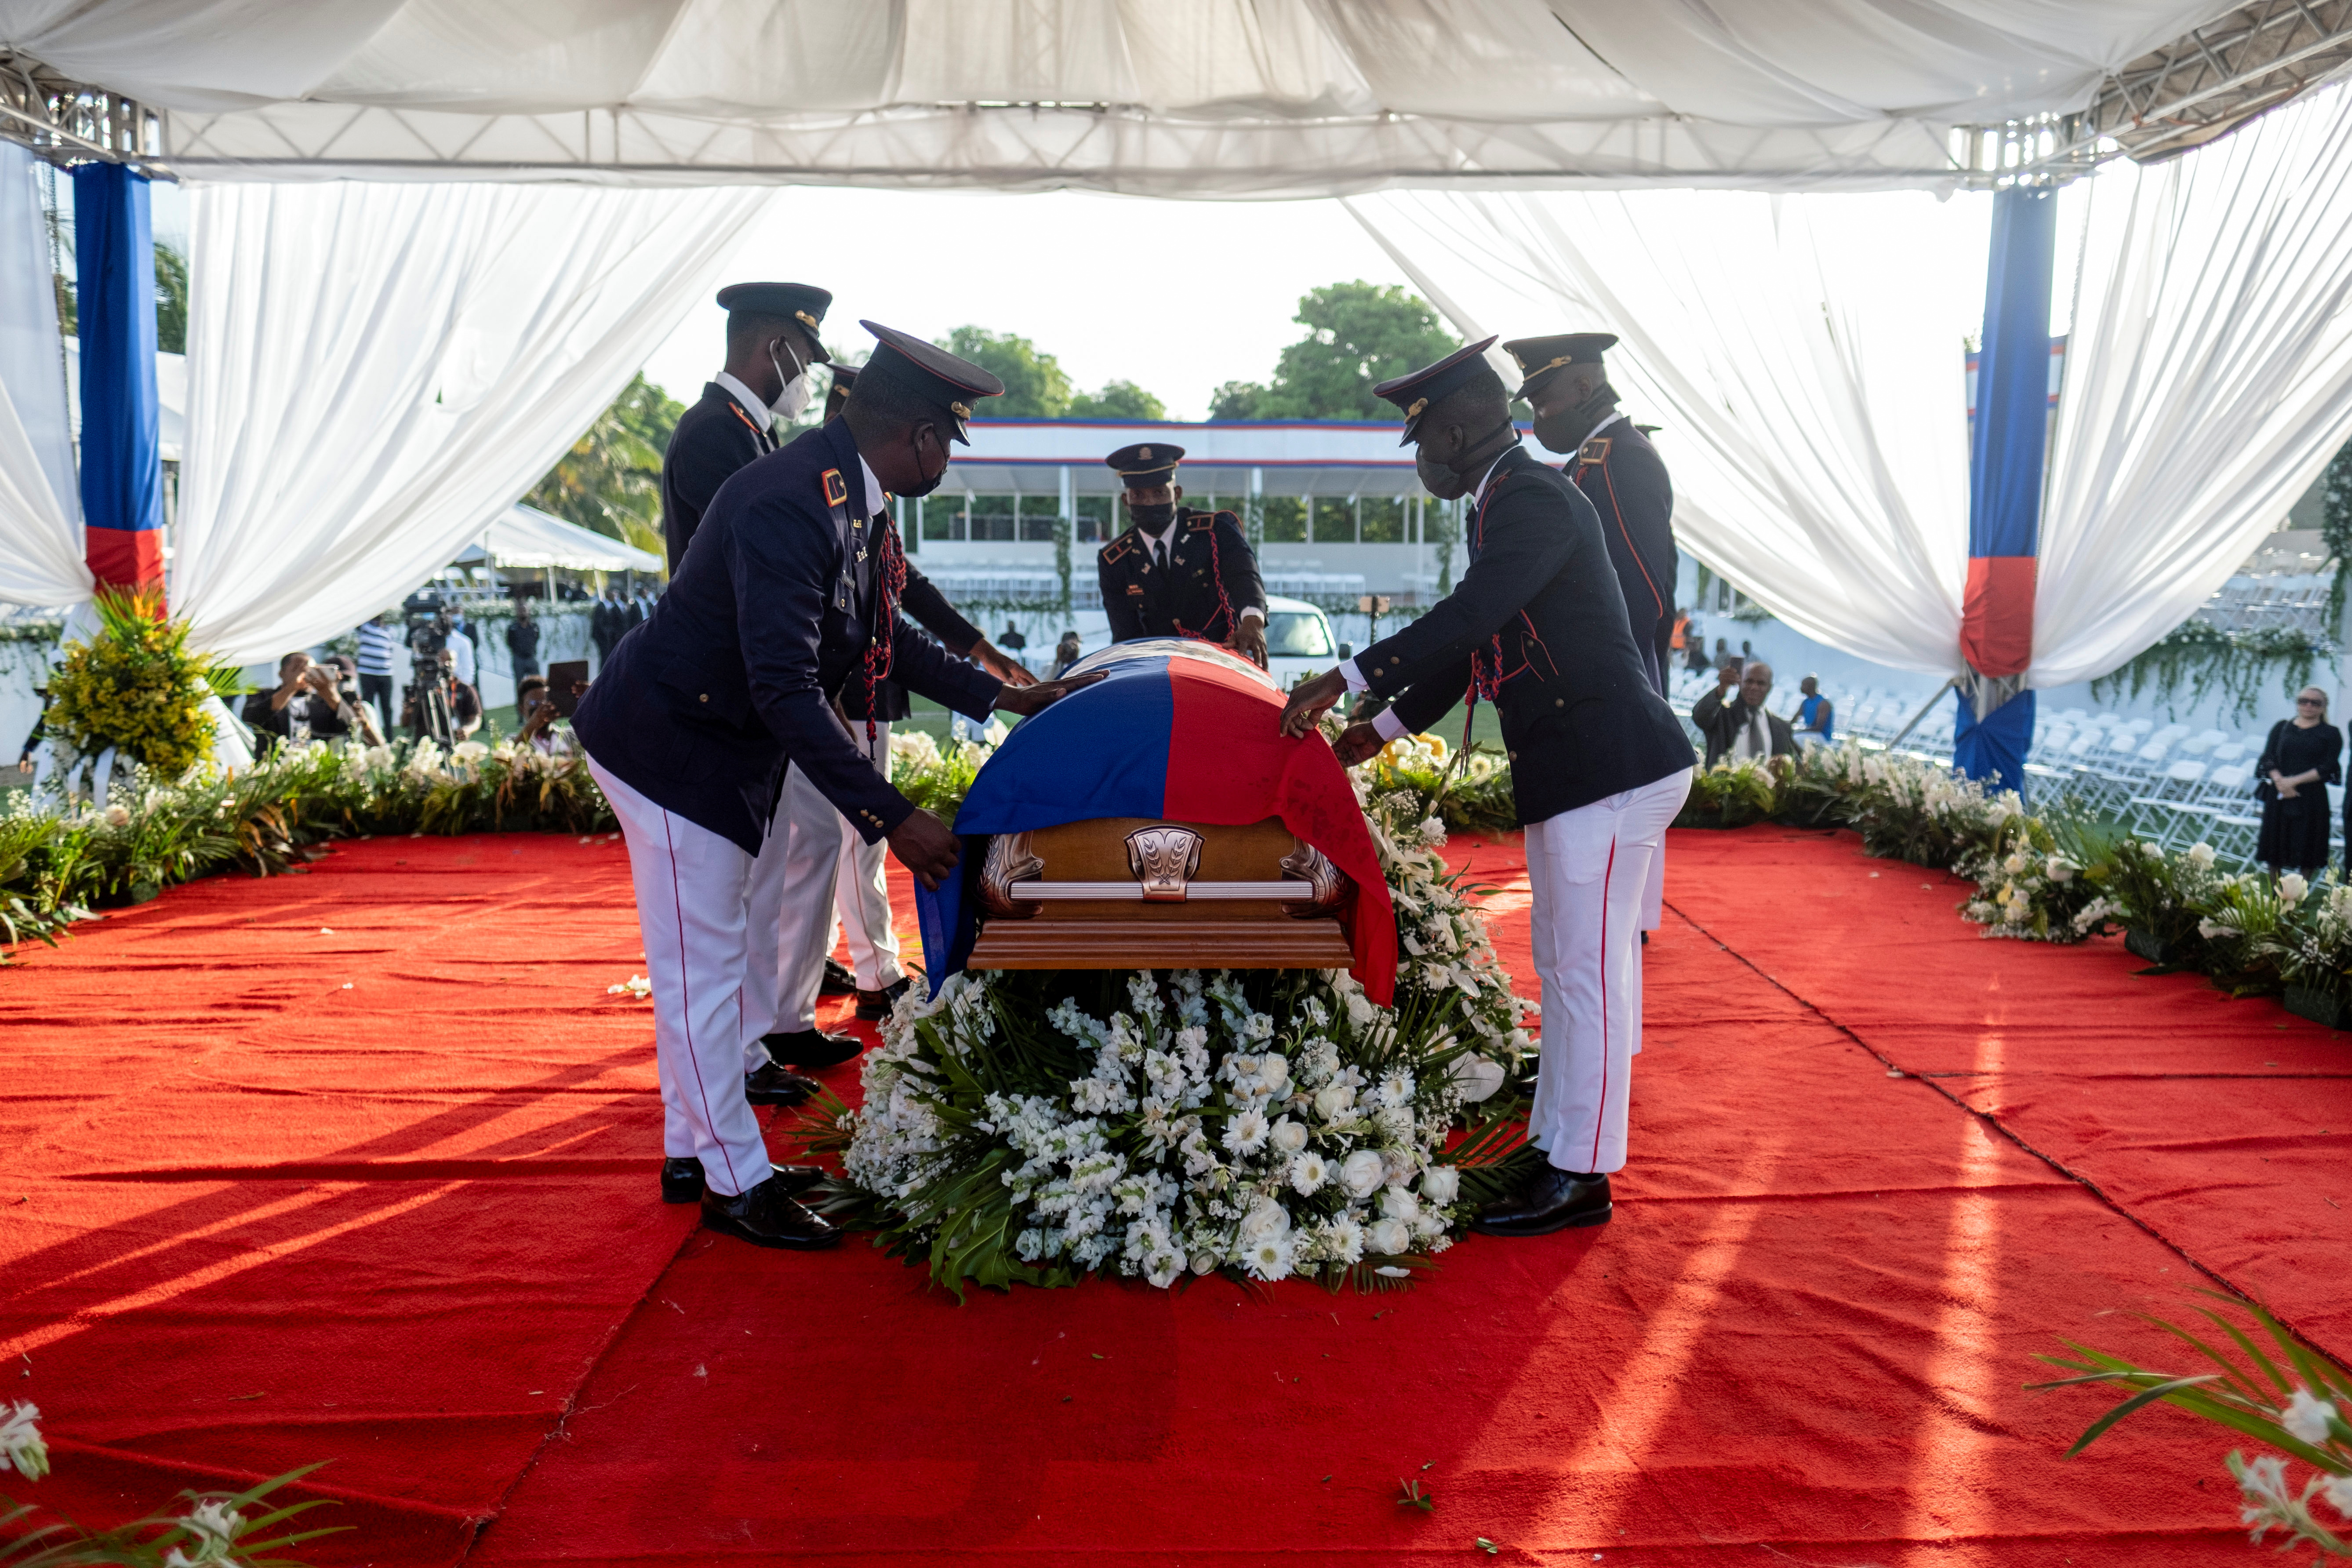 Presidential honor guards place a national flag over the coffin of late Haitian President Jovenel Moise, who was shot dead earlier this month, during the funeral at his family home in Cap-Haitien, Haiti, July 23, 2021. REUTERS/Ricardo Arduengo